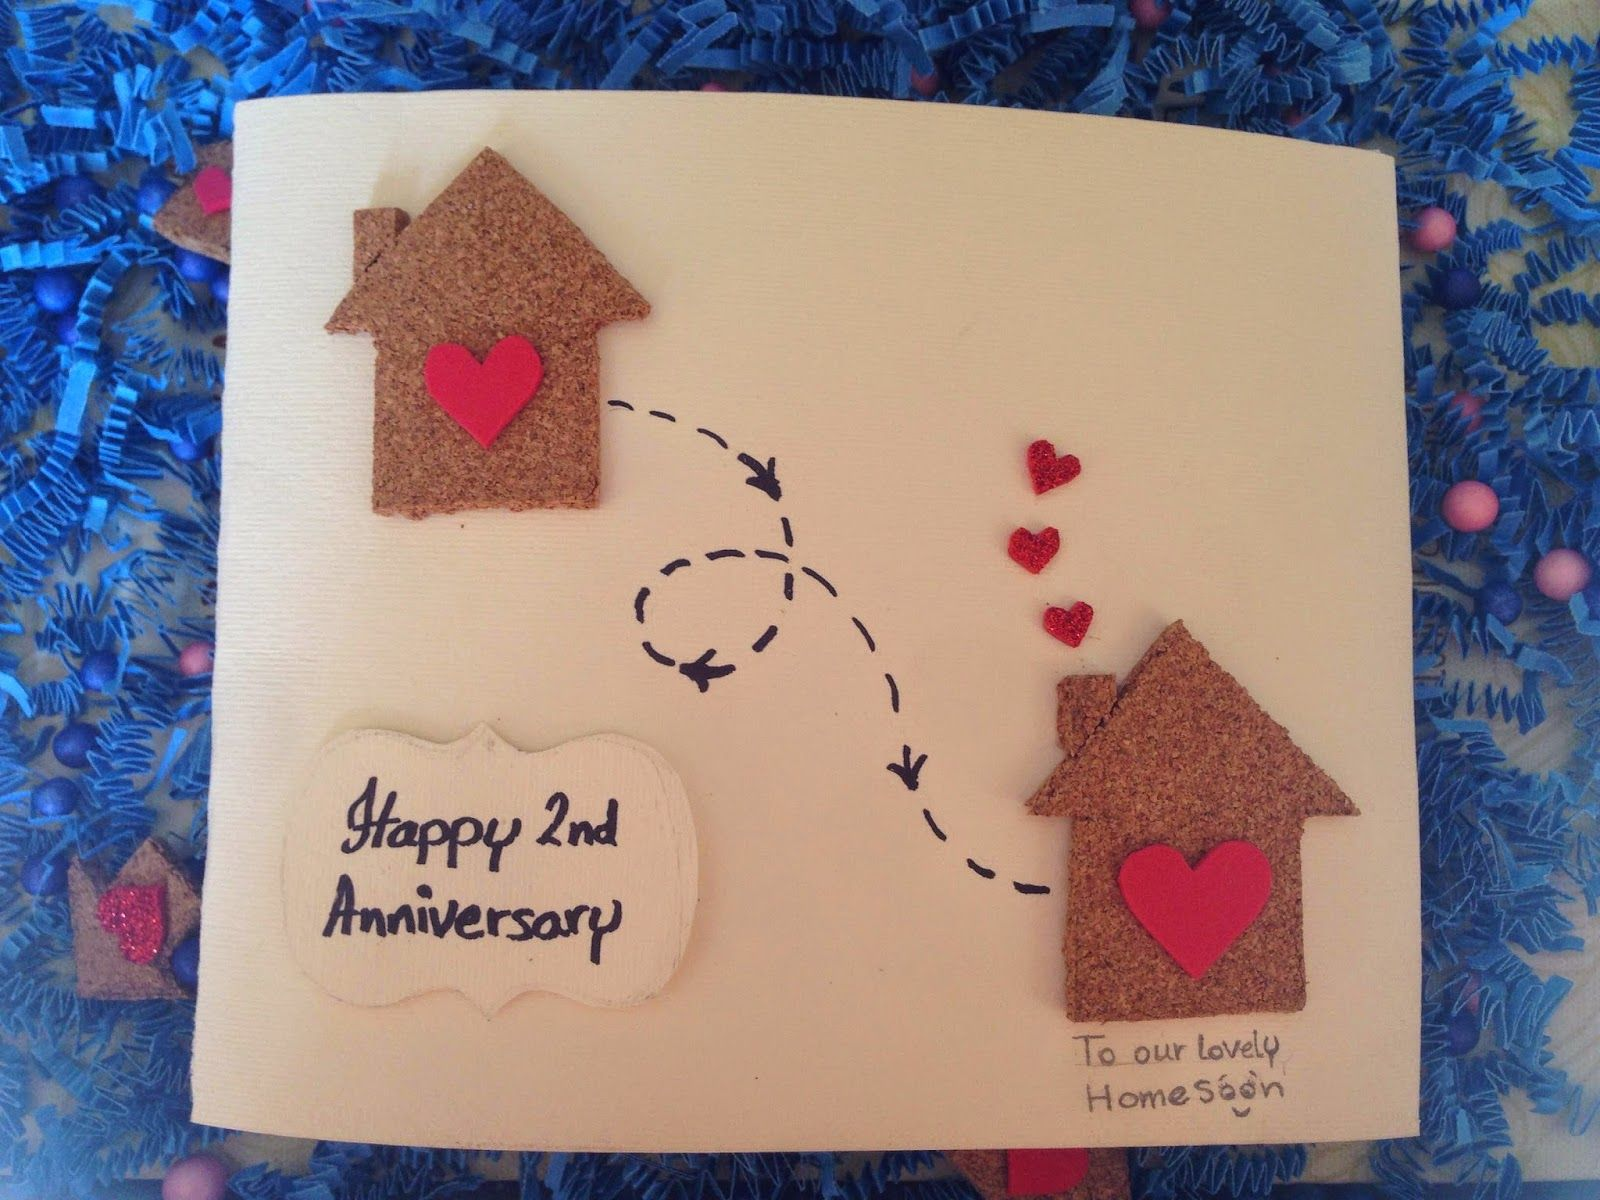 The Extreme Simple Idea For Anniversary Gift Diy Anniversary Cards Diy Anniversary Anniversary Cards